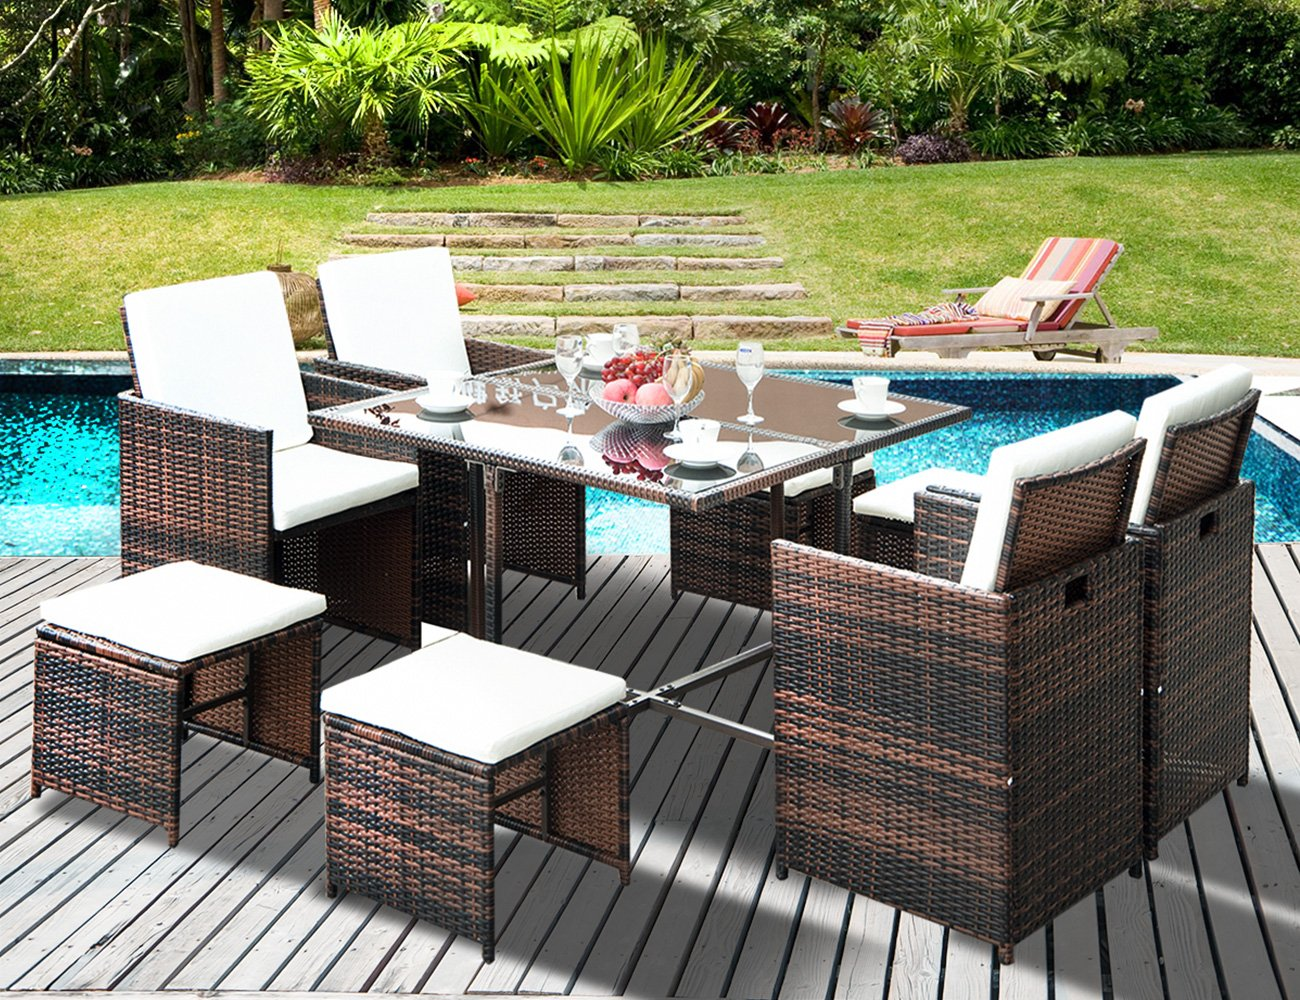 LZ LEISURE ZONE 9 Piece Patio Furniture Dining Set Outdoor Garden Wicker Rattan Dining Table Chairs Conversation Set with Cushions (Brown) - ✨Durable & Beautiful: Constructed with durable powder-coated steel frames and woven PE rattan to make the table and chairs durable enough for long time use. Perfectly highlights your patio or poolside décor. ✨Weather Resistant: Featuring sturdy construction and durable use, this patio outdoor wicker can well stand for both test of time and high temperature, which is perfect for any outdoor and indoor use. ✨Effortlessly Clean Up: Table with tempered glass adds a sophisticated touch and allows you to places drinks, meals and other accessories on top. And you can clean it easily with just a wipe when there is water strain on it. - patio-furniture, dining-sets-patio-funiture, patio - 81aNUEx72XL -